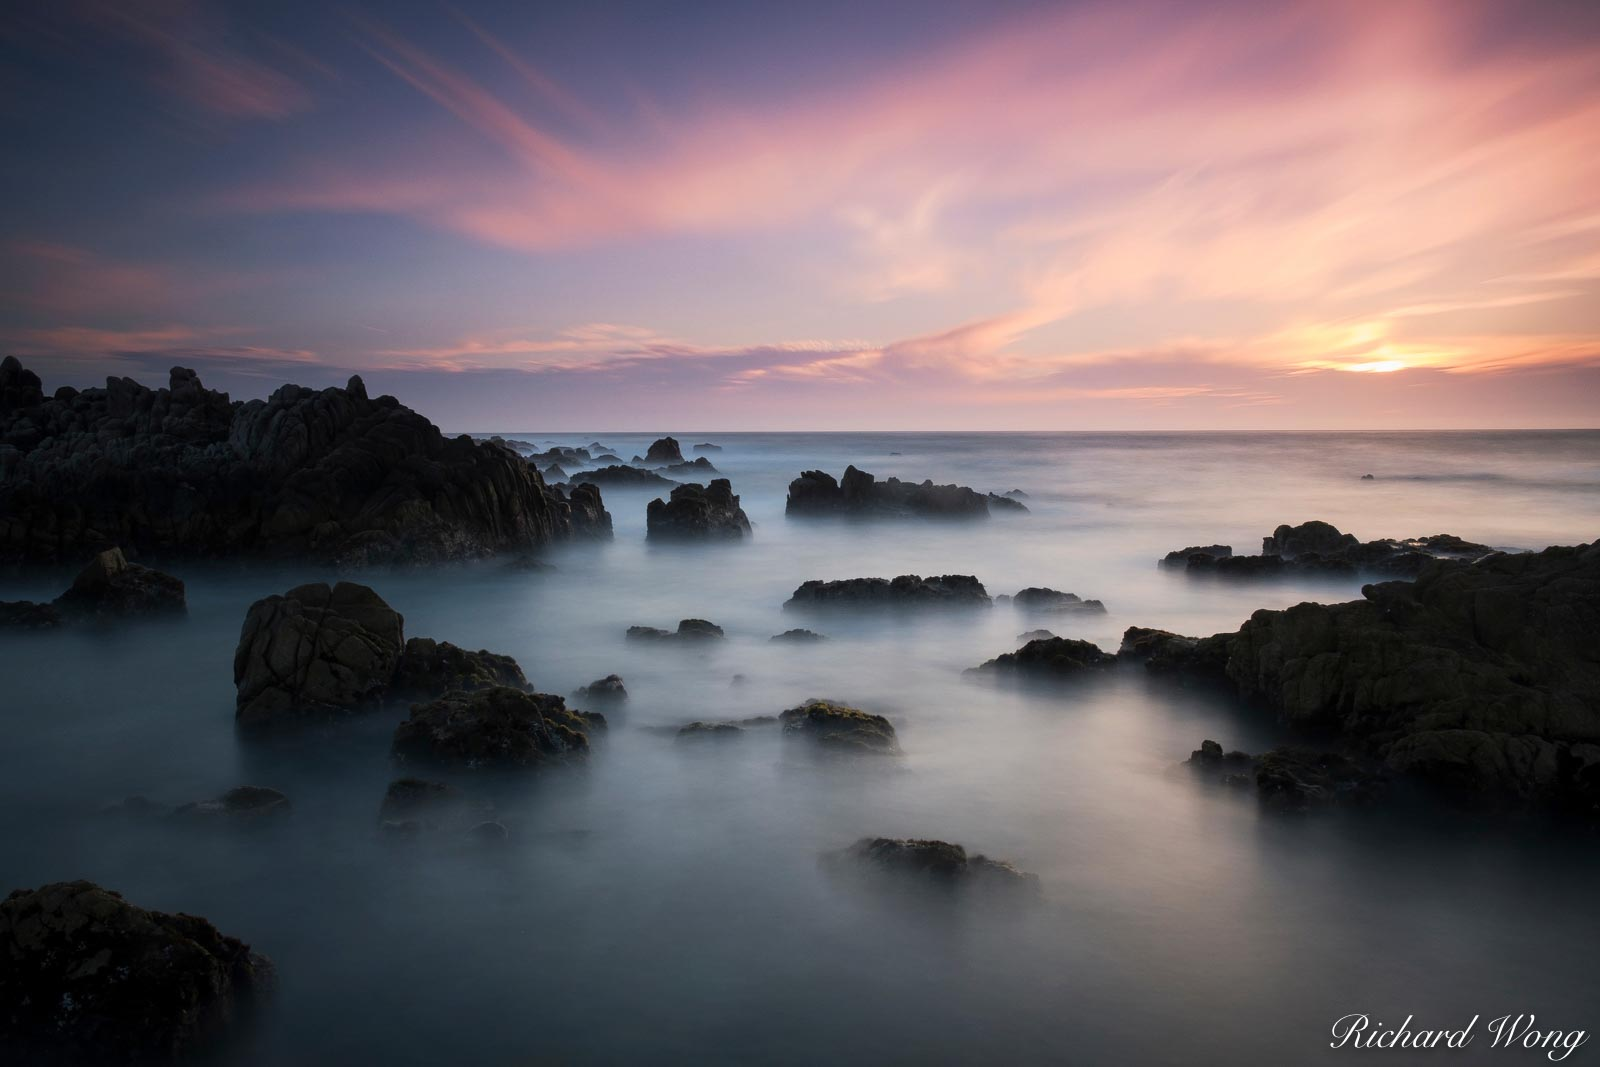 Pacific Grove Marine Gardens Park at Sunset, California, photo, photo